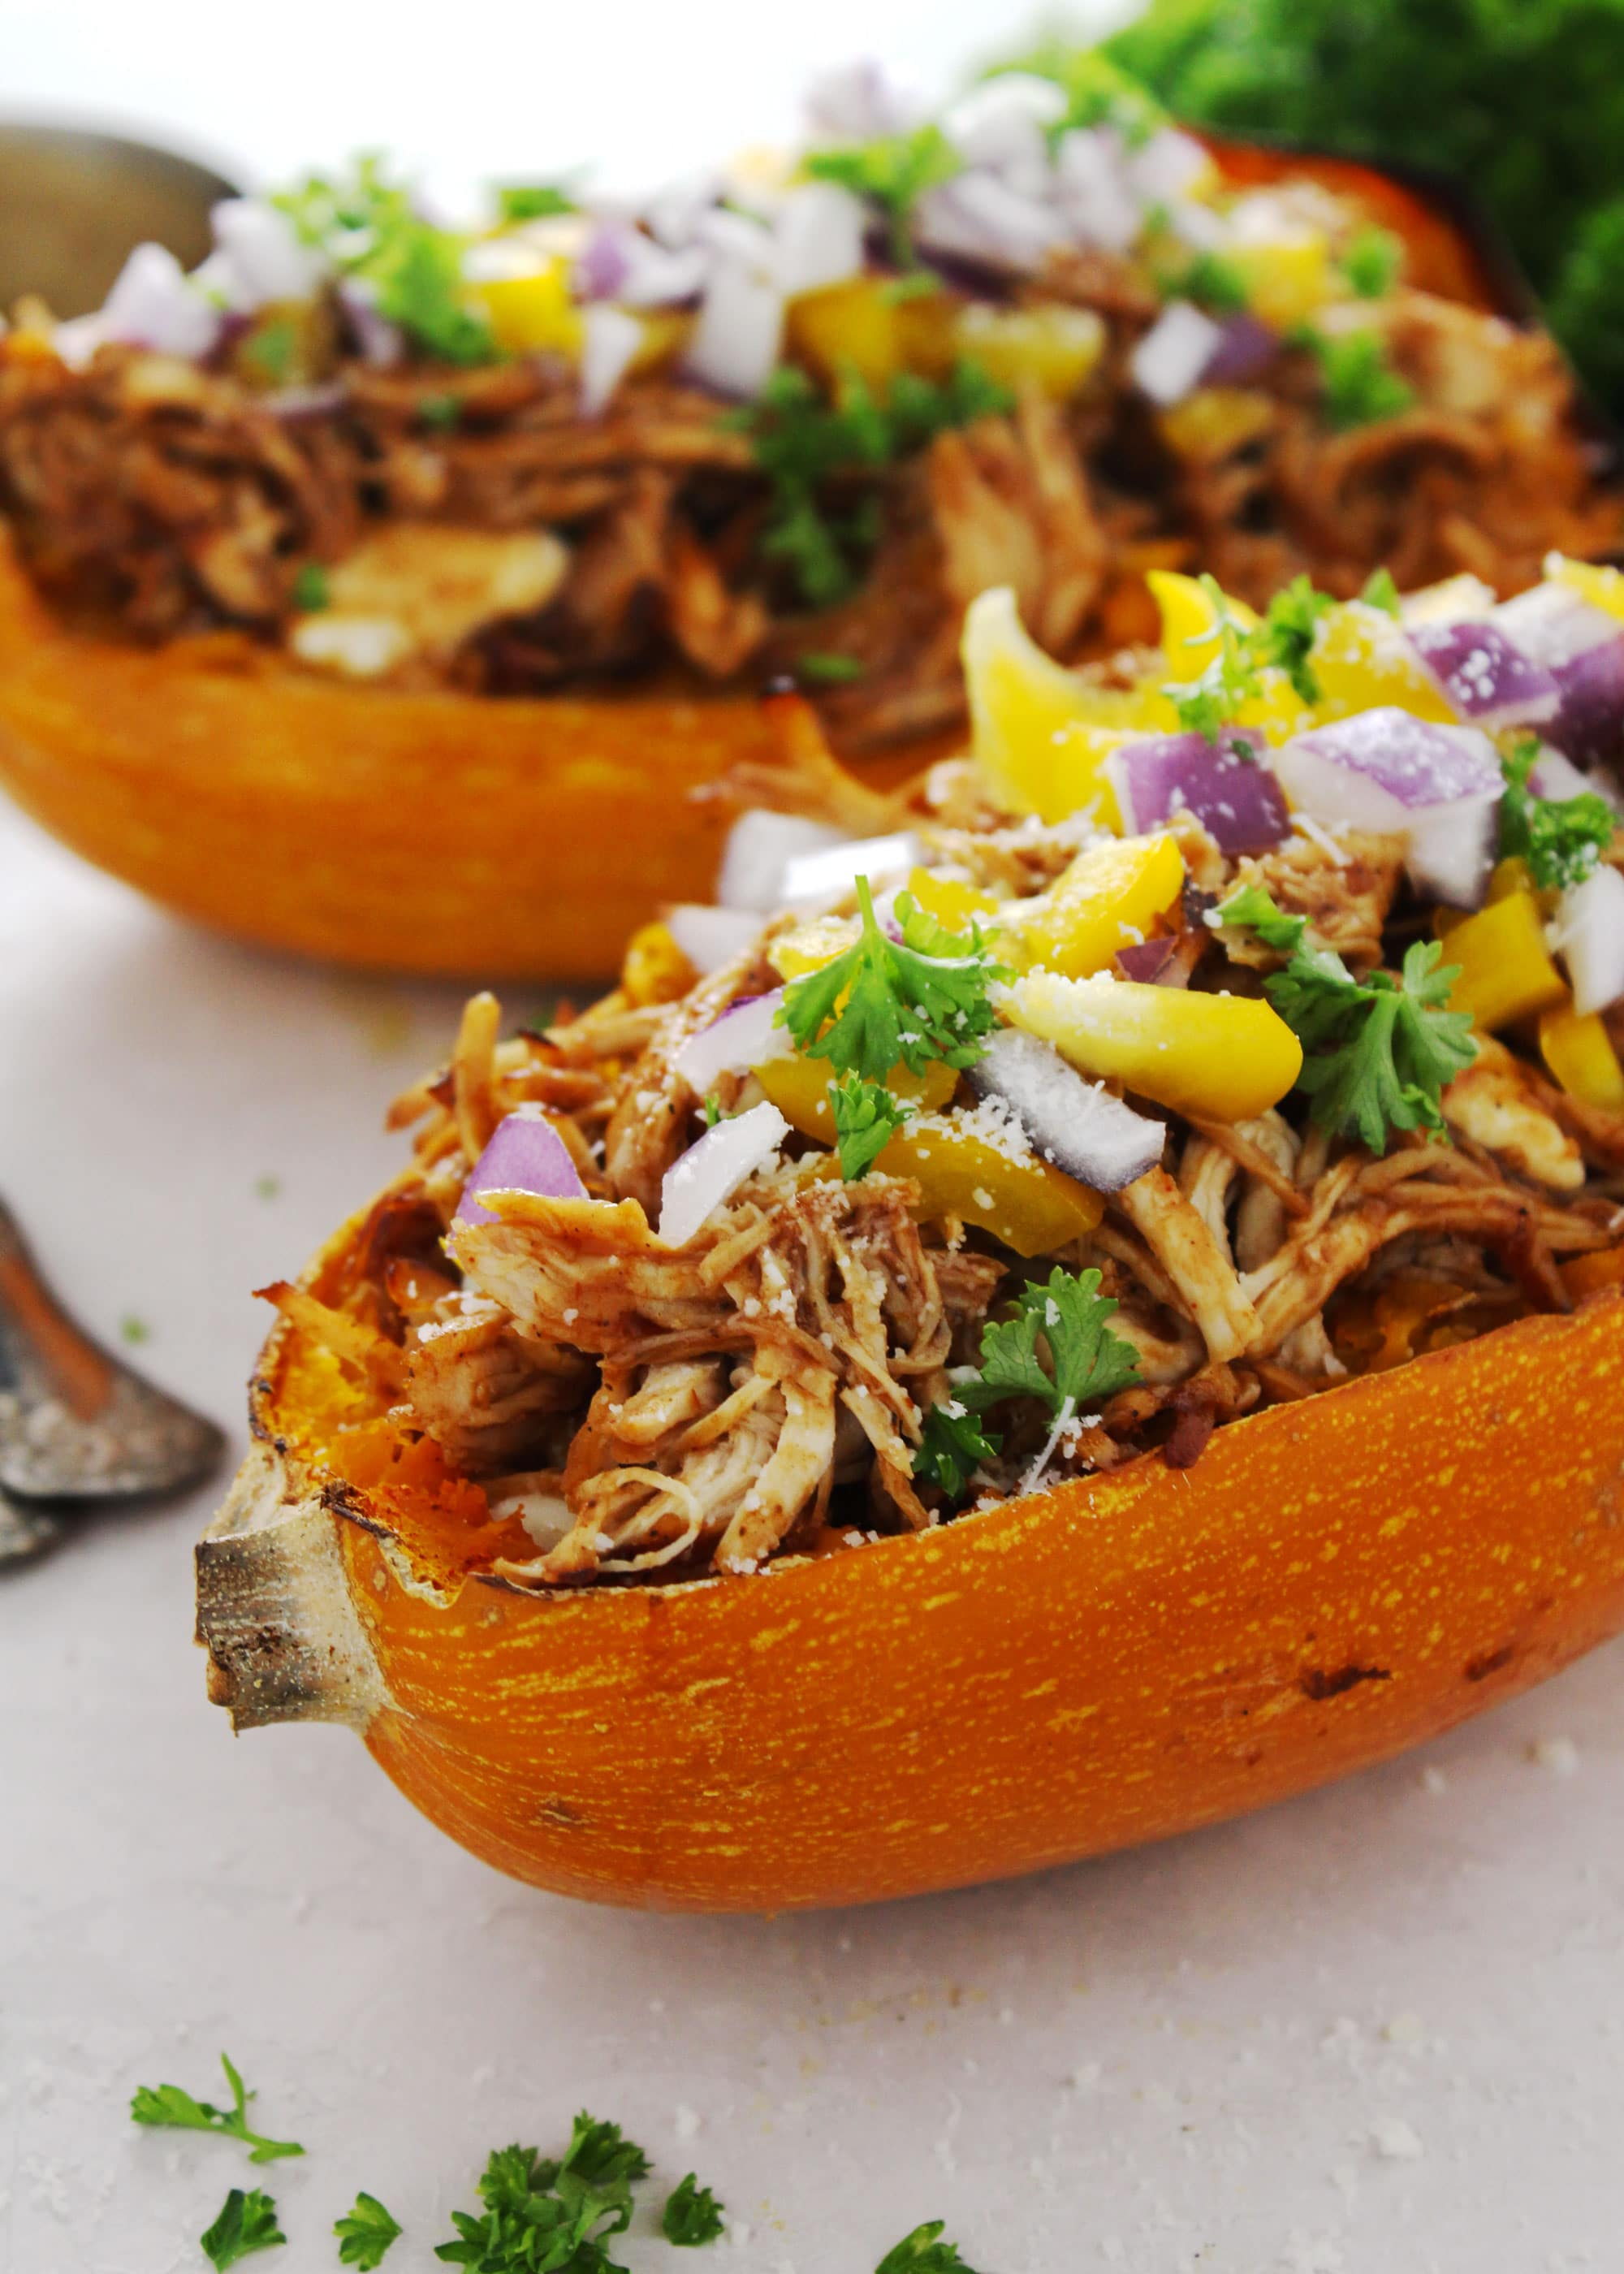 Spaghetti squash stuffed with barbecue pulled chicken and topped with delicious vegetables.